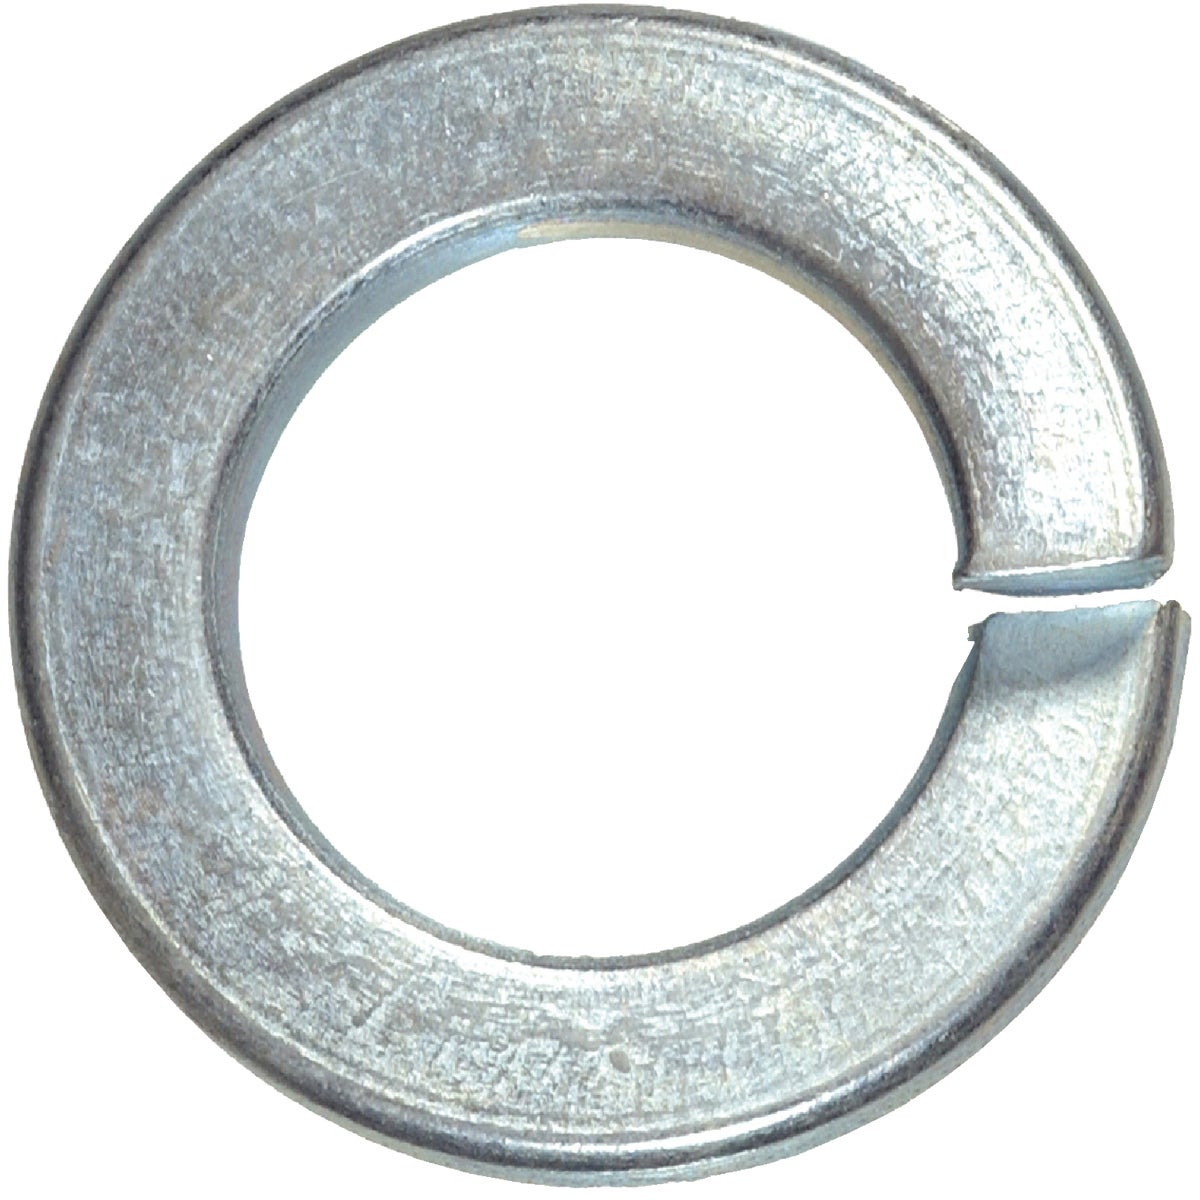 100PC #8 LOCK WASHER